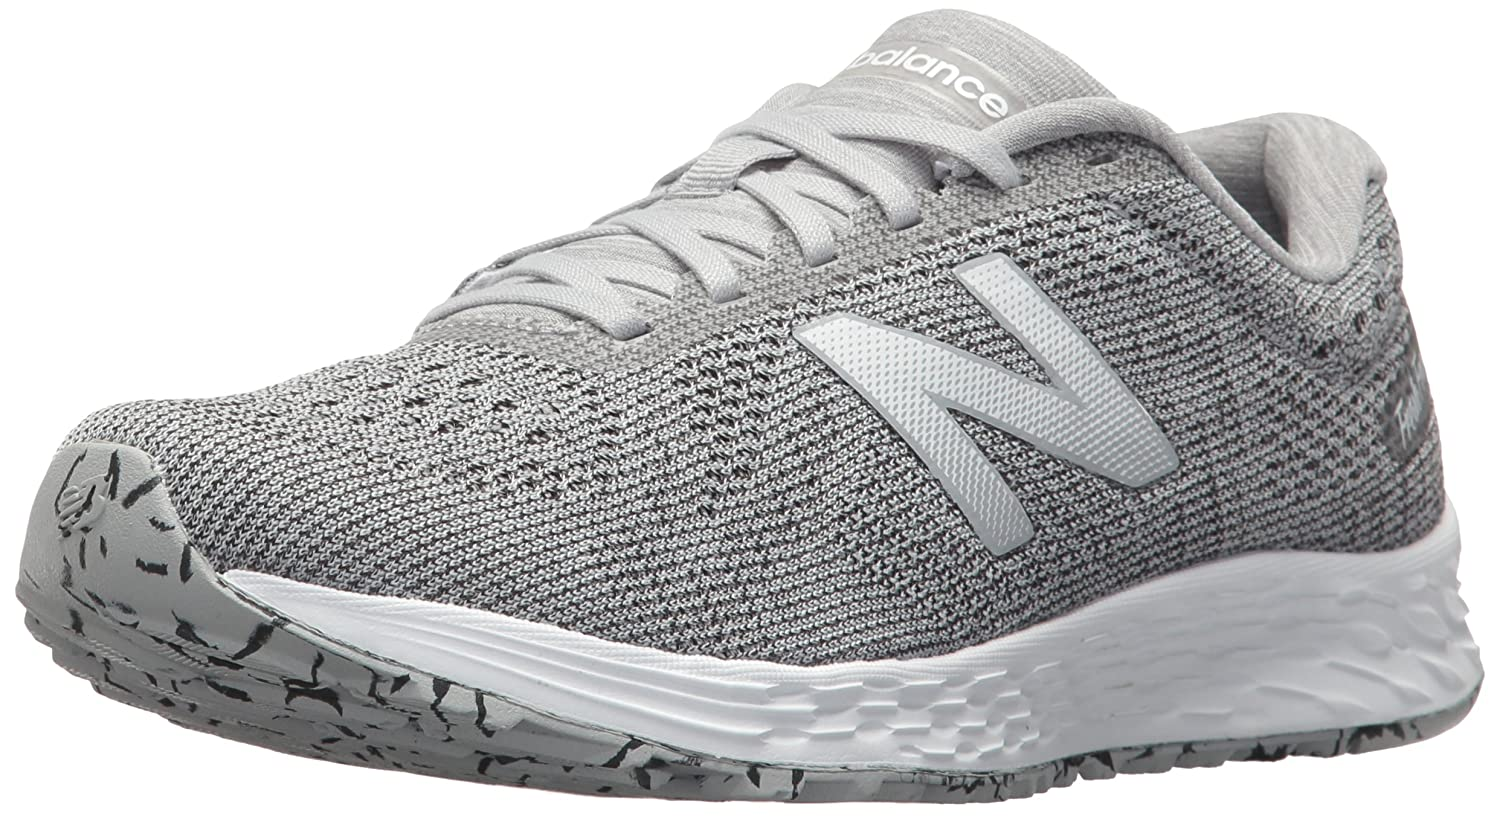 New Balance Women's Fresh Foam Arishi V1 Running Shoe B01MS13BEC 8 D US|Light Grey/White